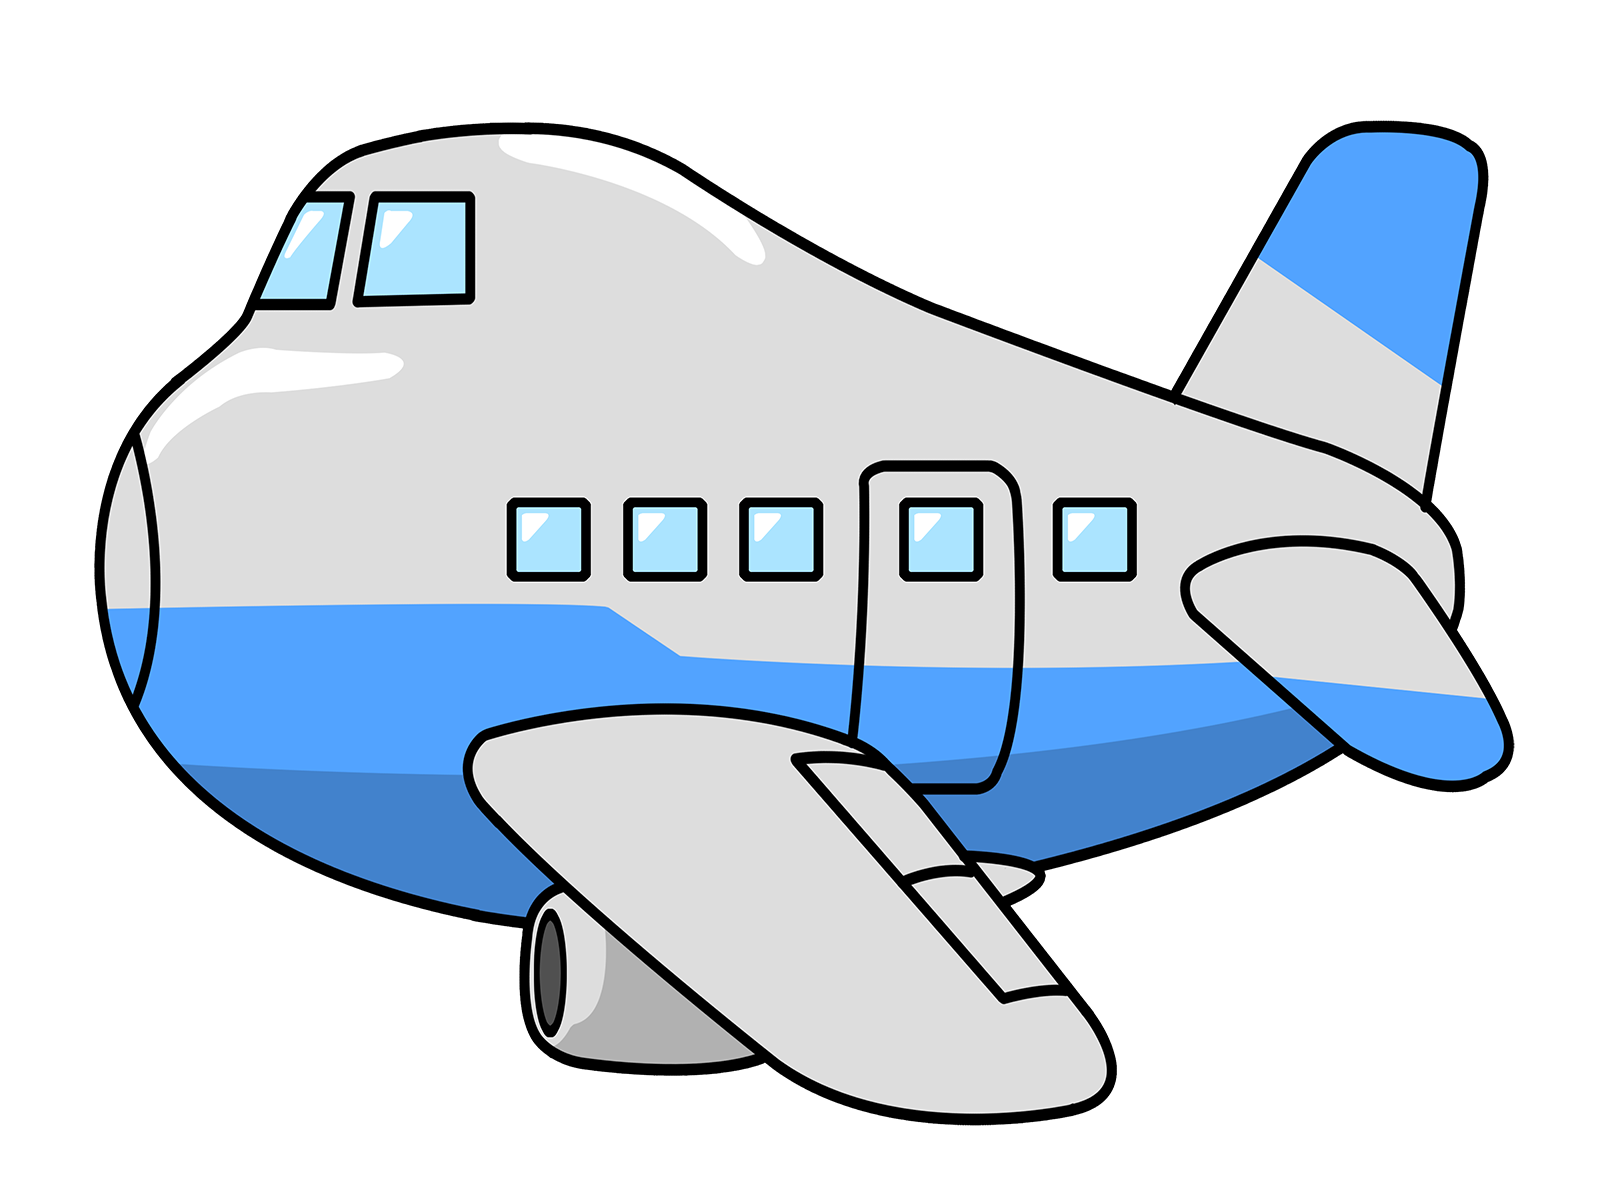 Aircraft clipart #11, Download drawings